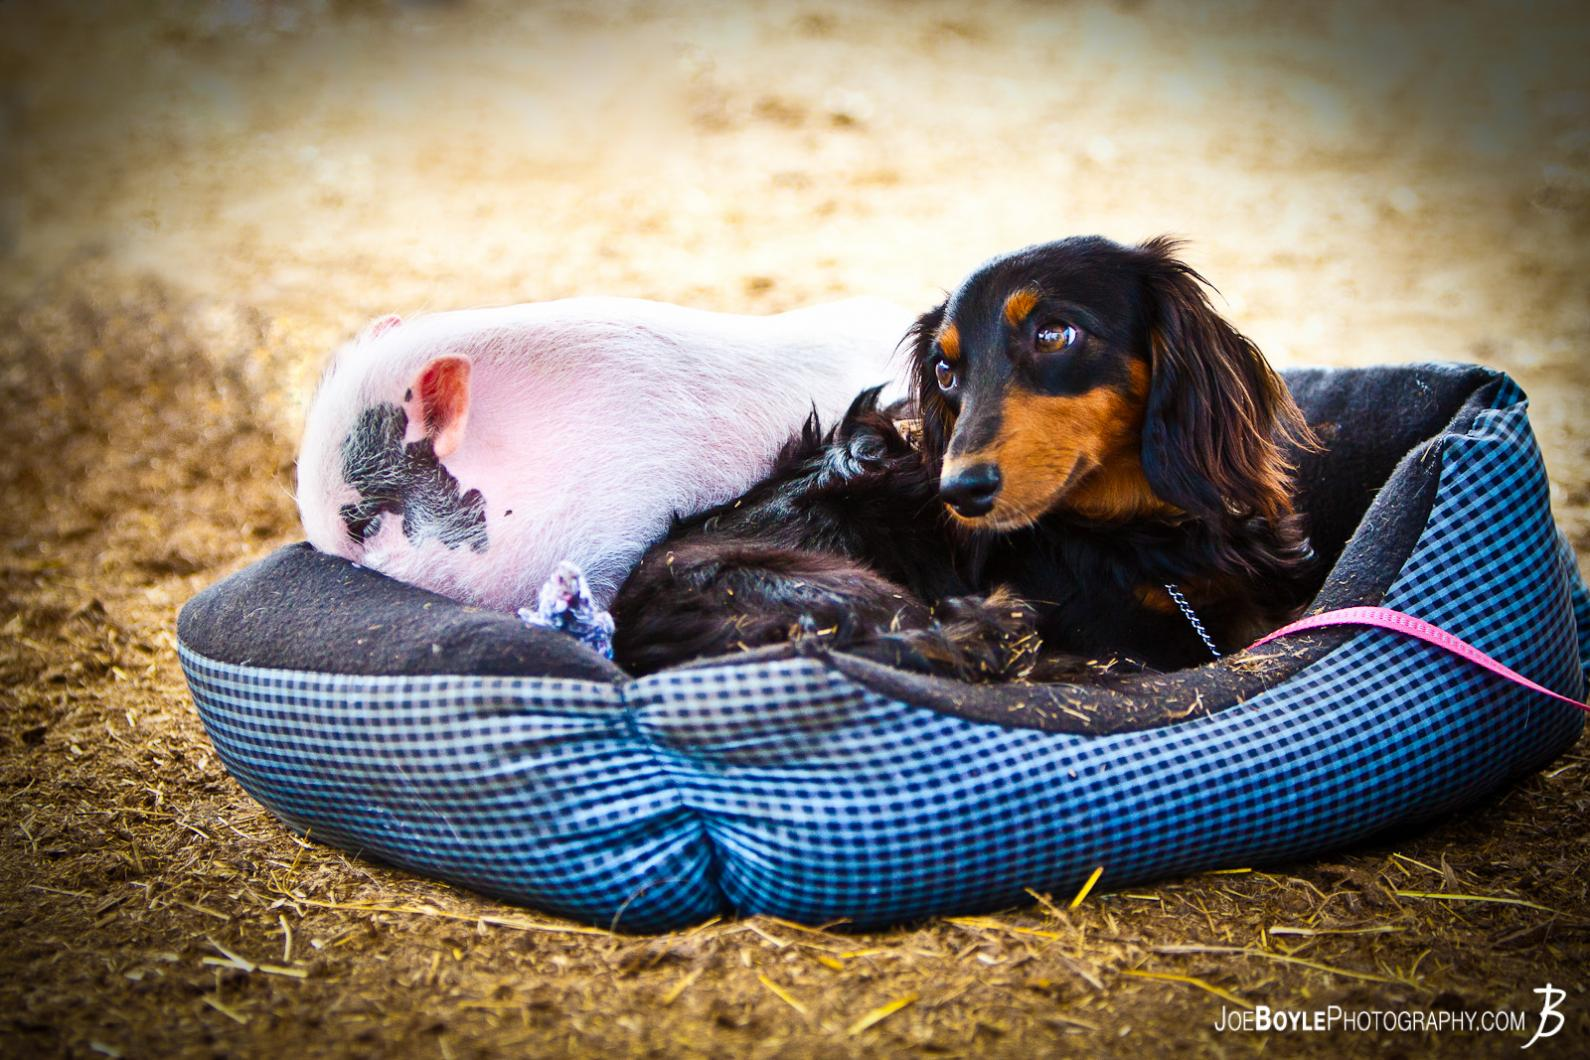 dog-pig-lying-together-in-a-bed